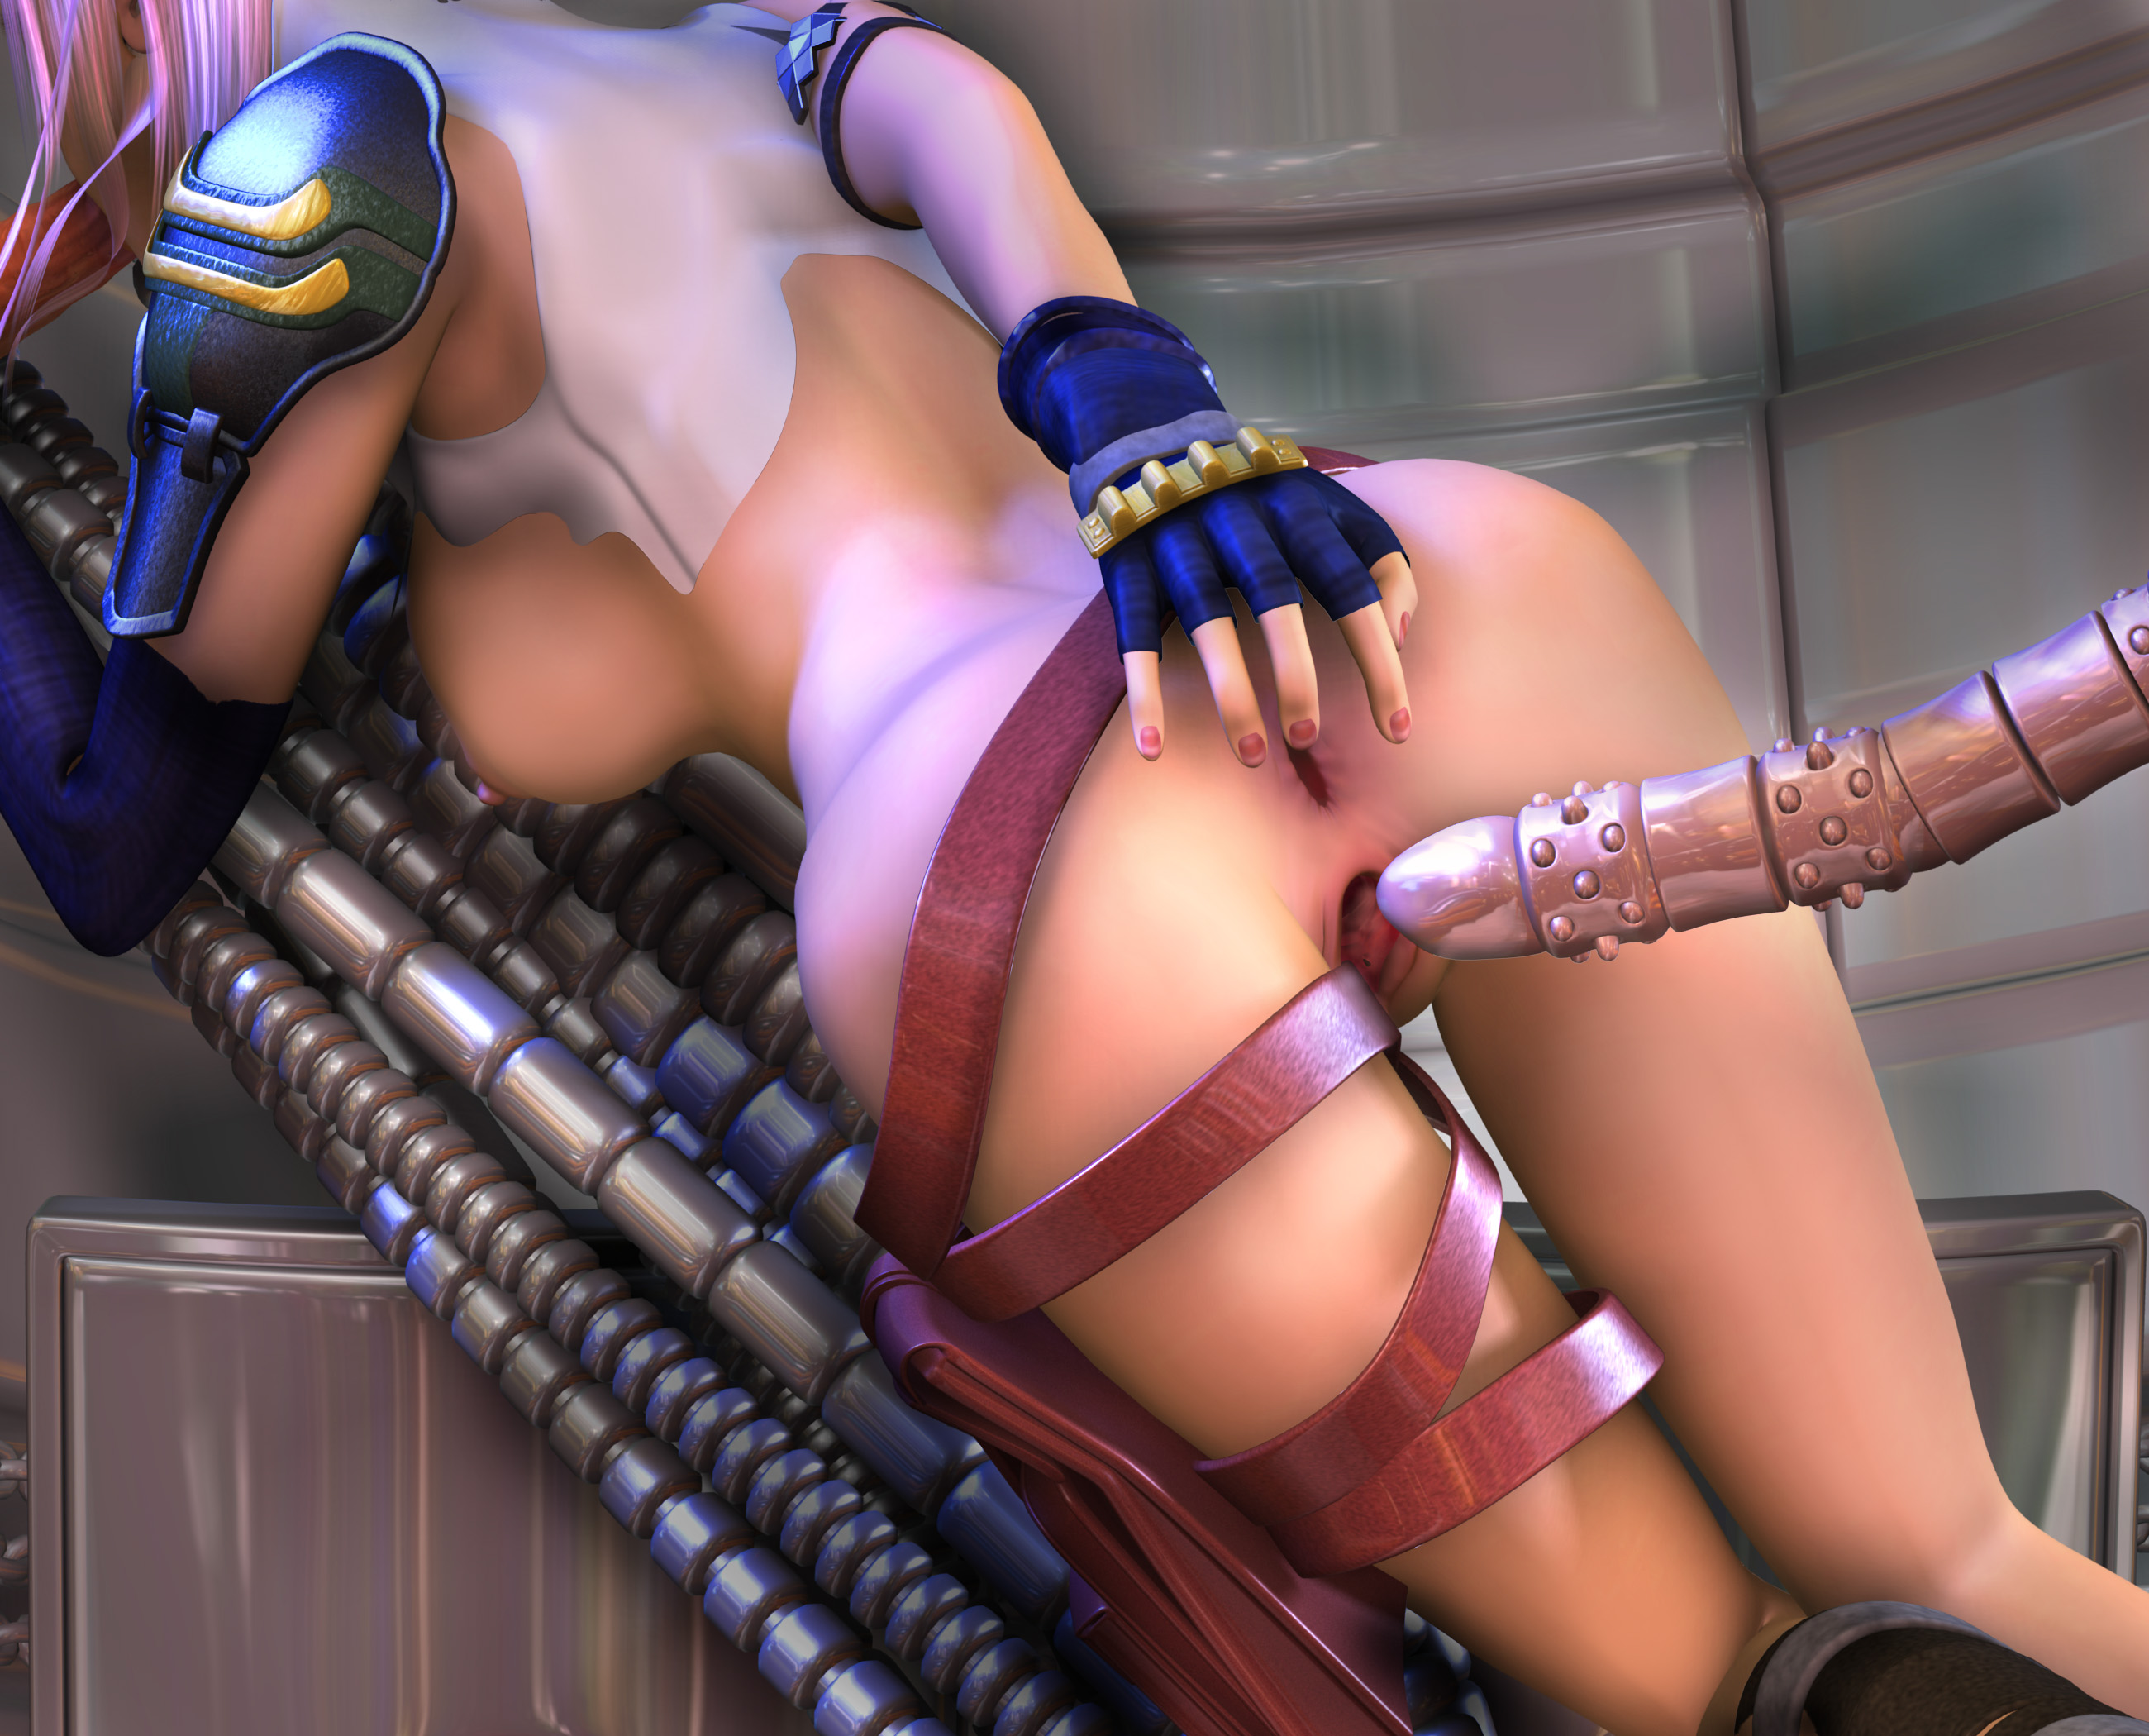 Sexy ass fantasy 3d picture hentai angel